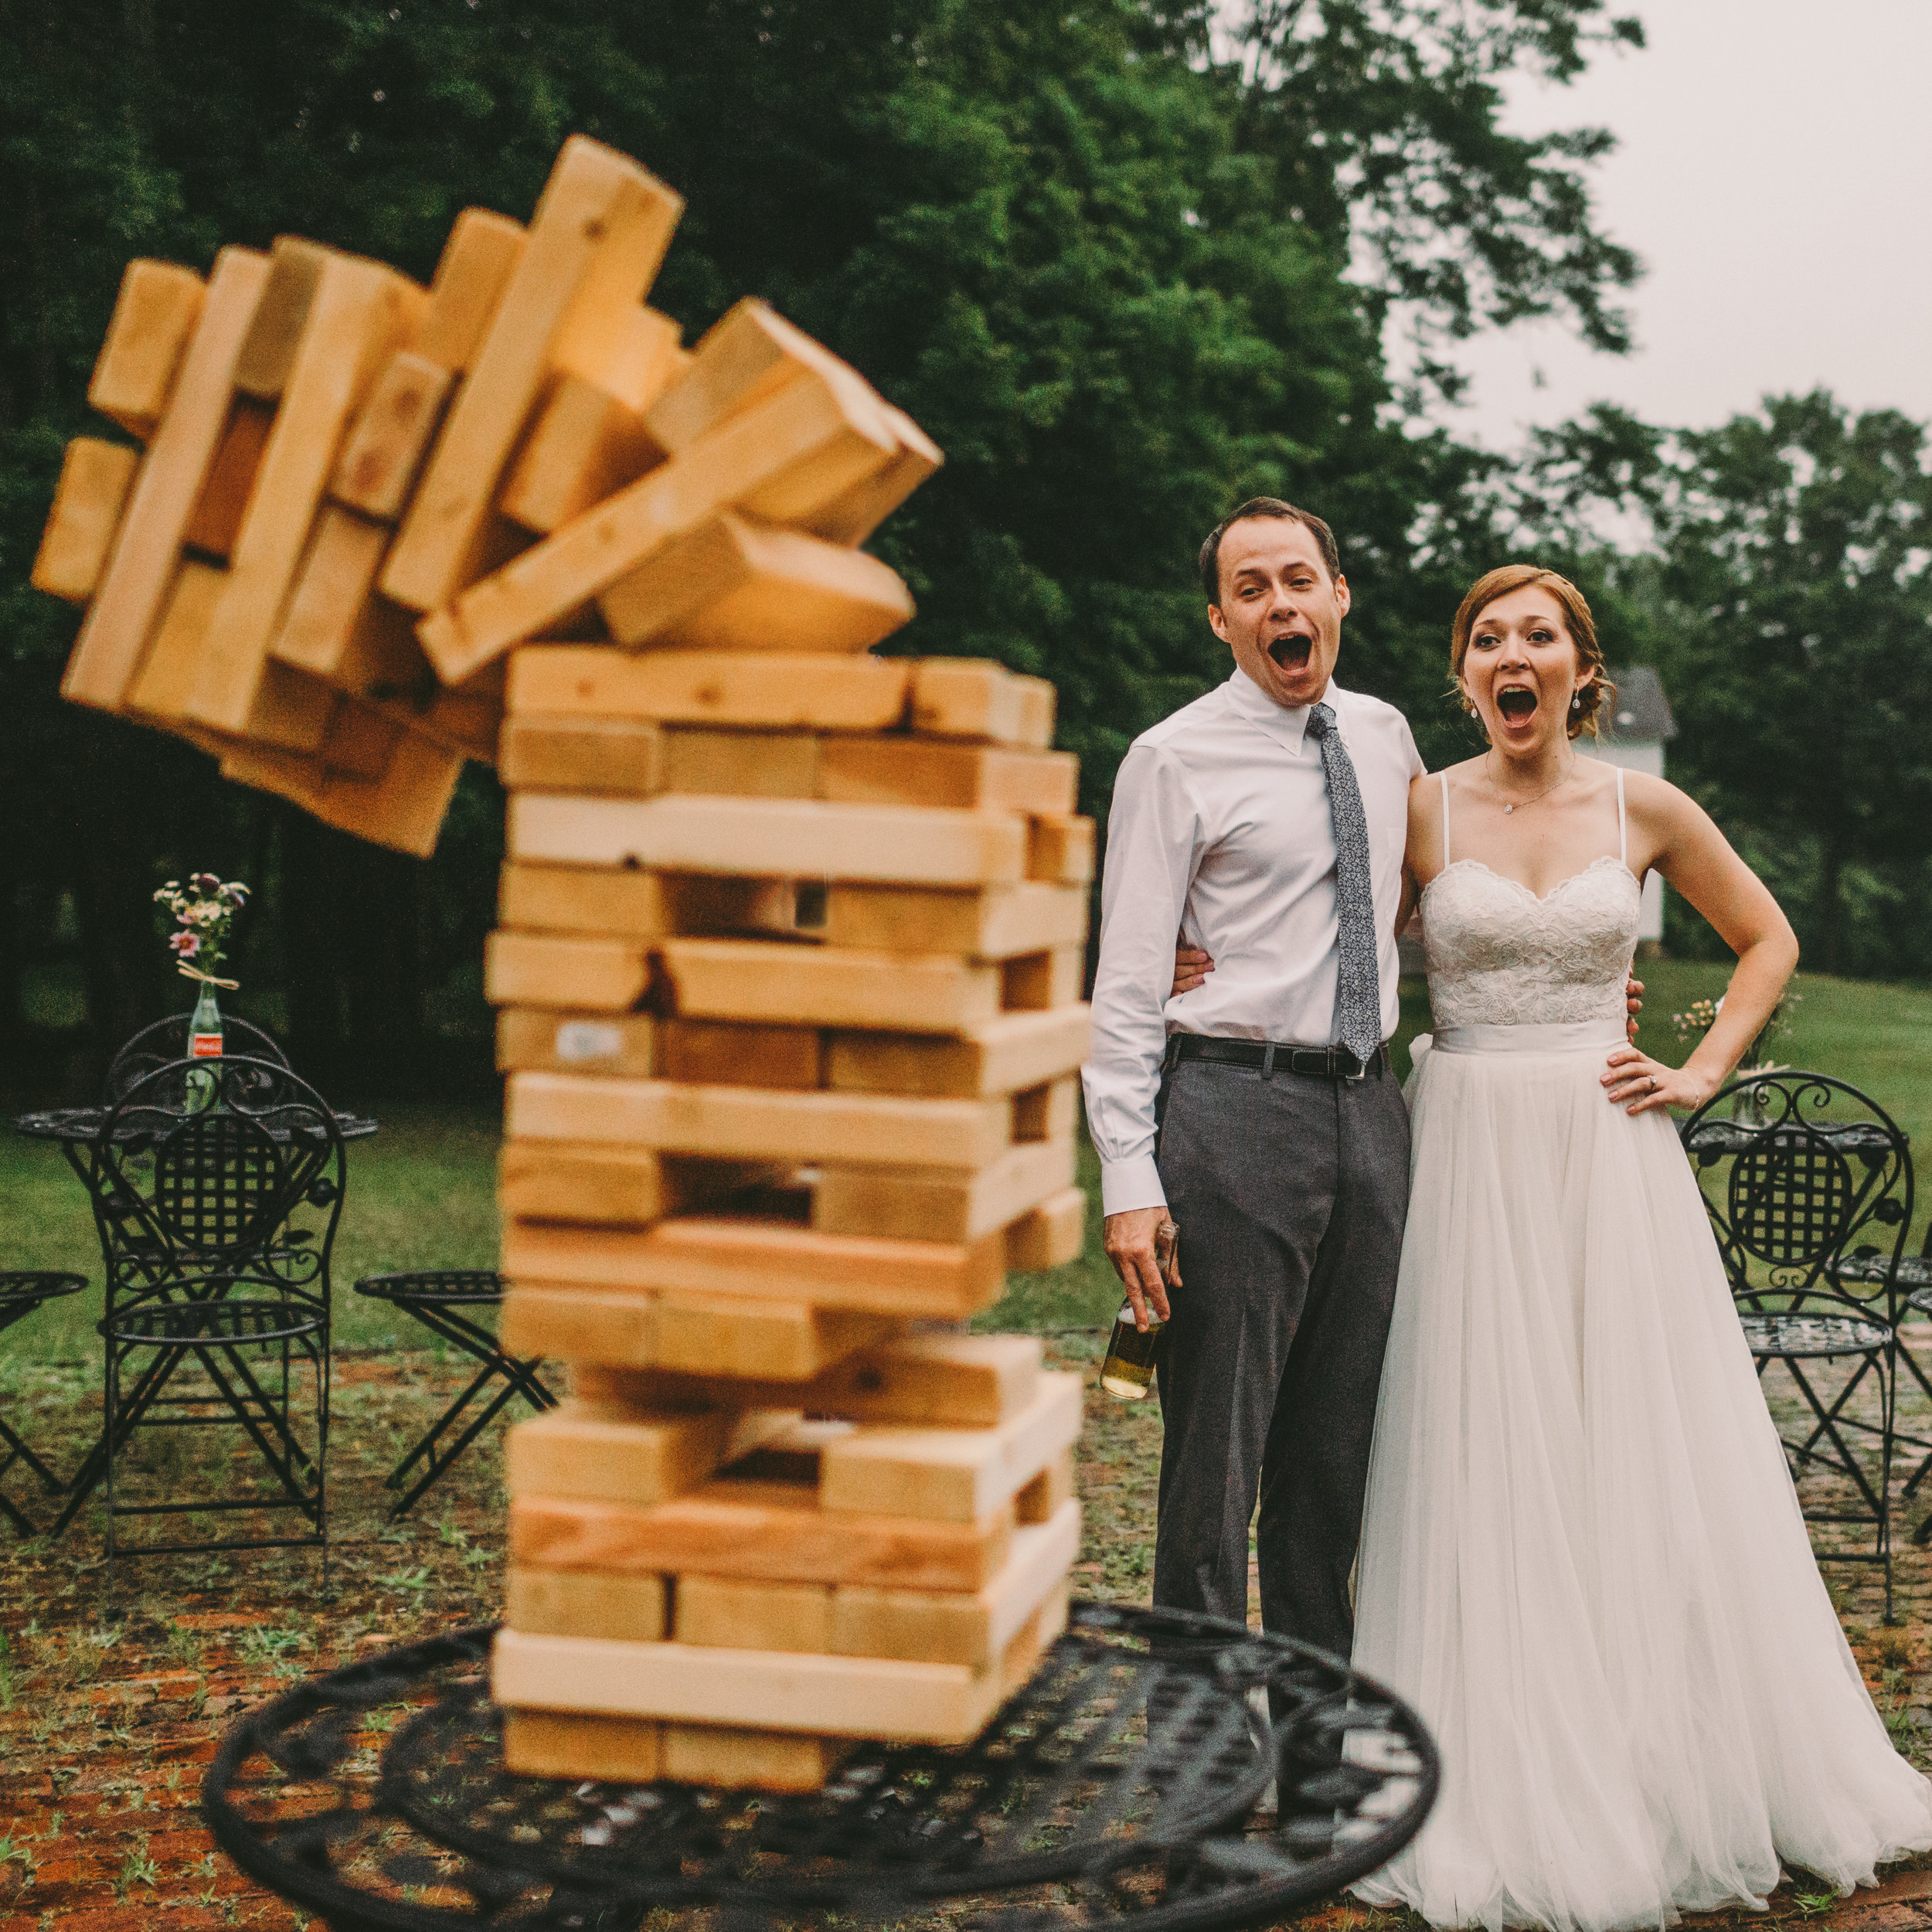 Bride and Groom playing Jenga at their rustic waterloo village wedding in Stanhope, New Jersey